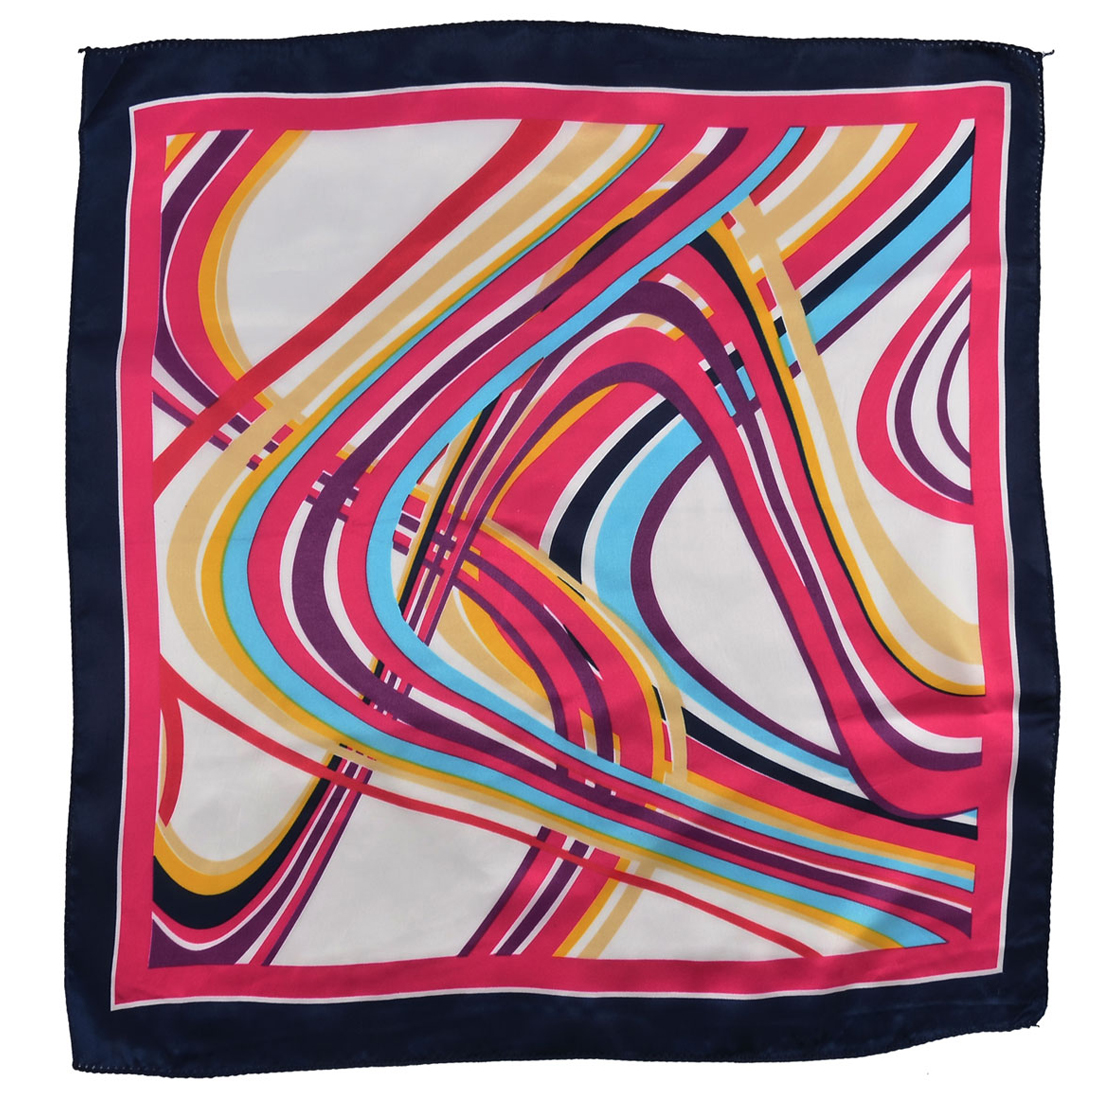 Lady Polyester Novelty Pattern Square Scarf Neckerchief Colorful 50cm x 49cm